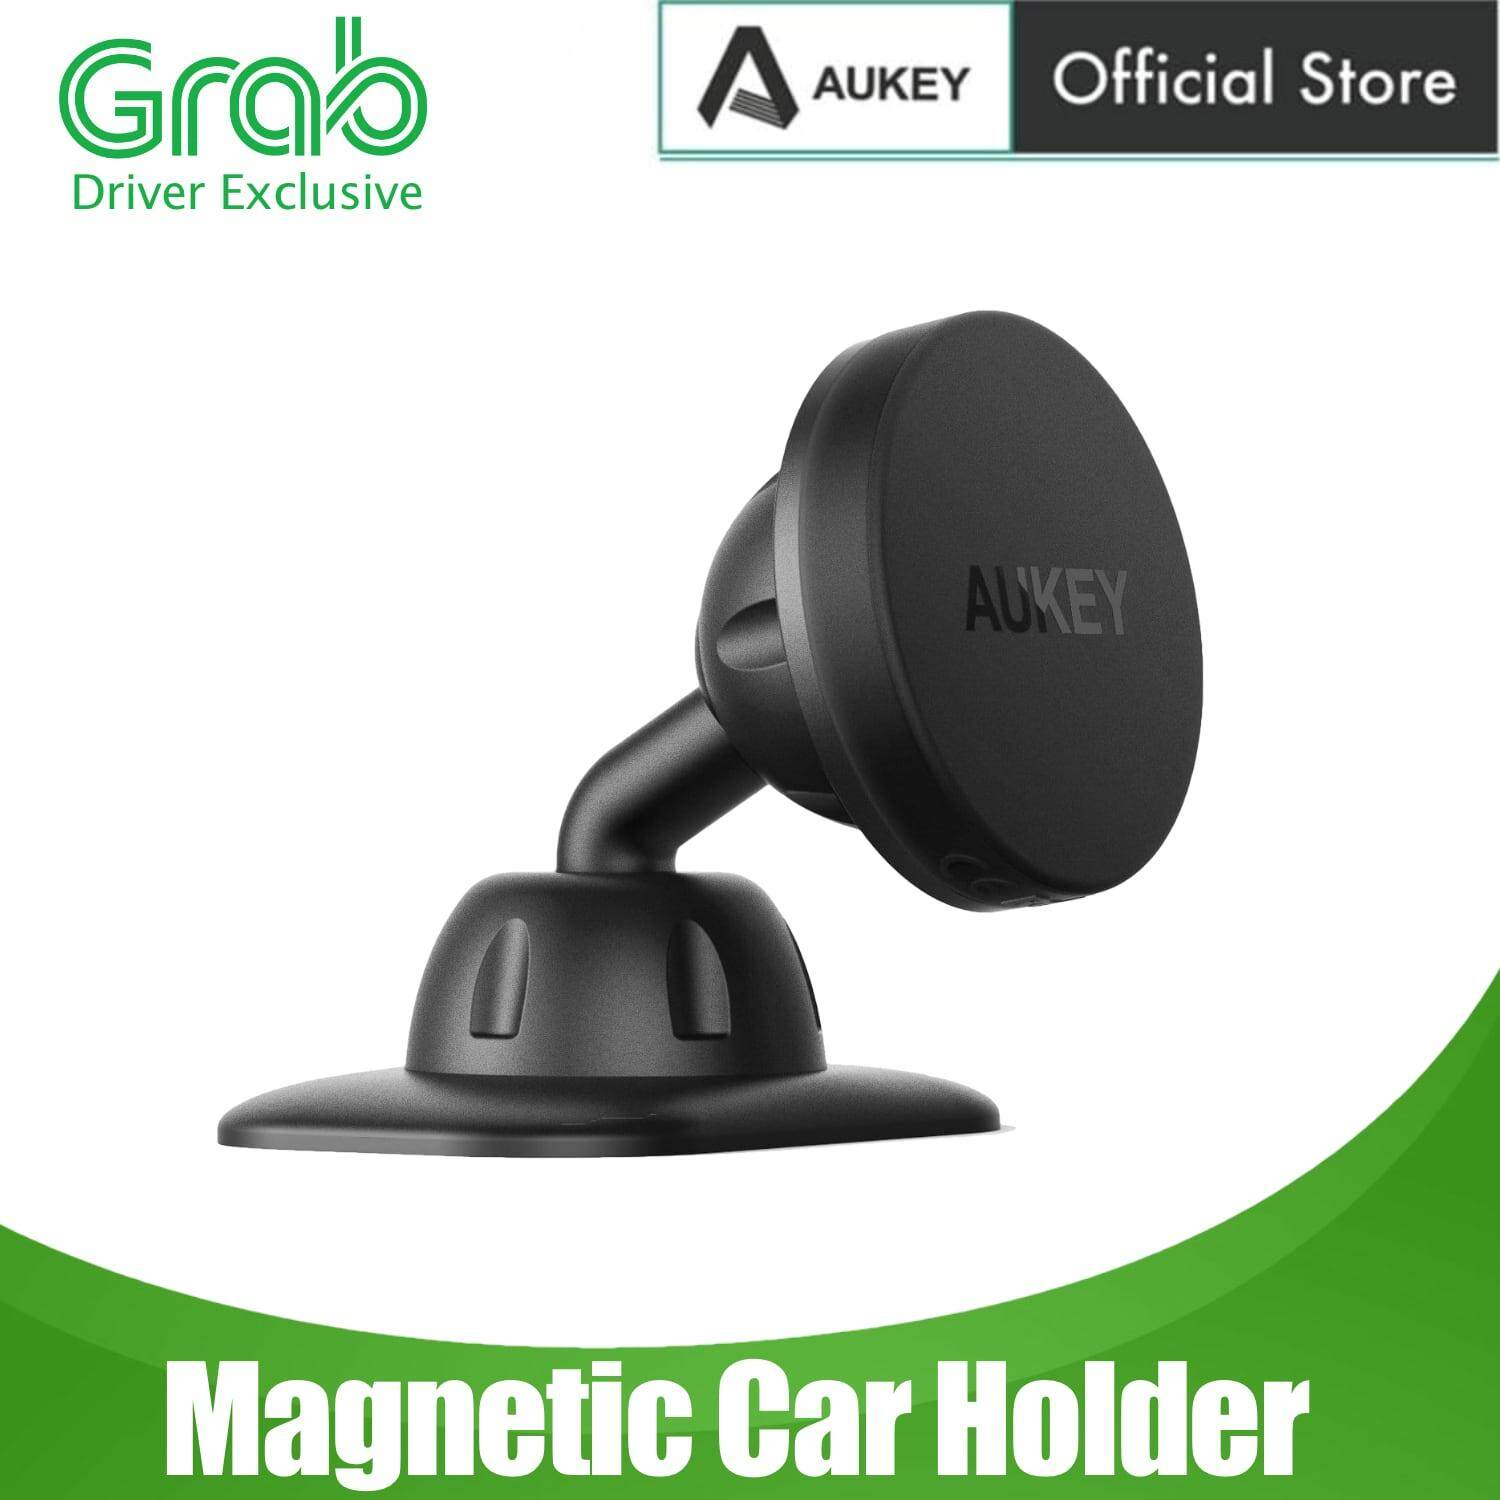 [12.12 Crazy Brand Mega Offers][GRAB DRIVER EXCLUSIVE] AUKEY HD-C13 Universal Dashboard Car Holder Mount Magnetic Phone Holder Cradle